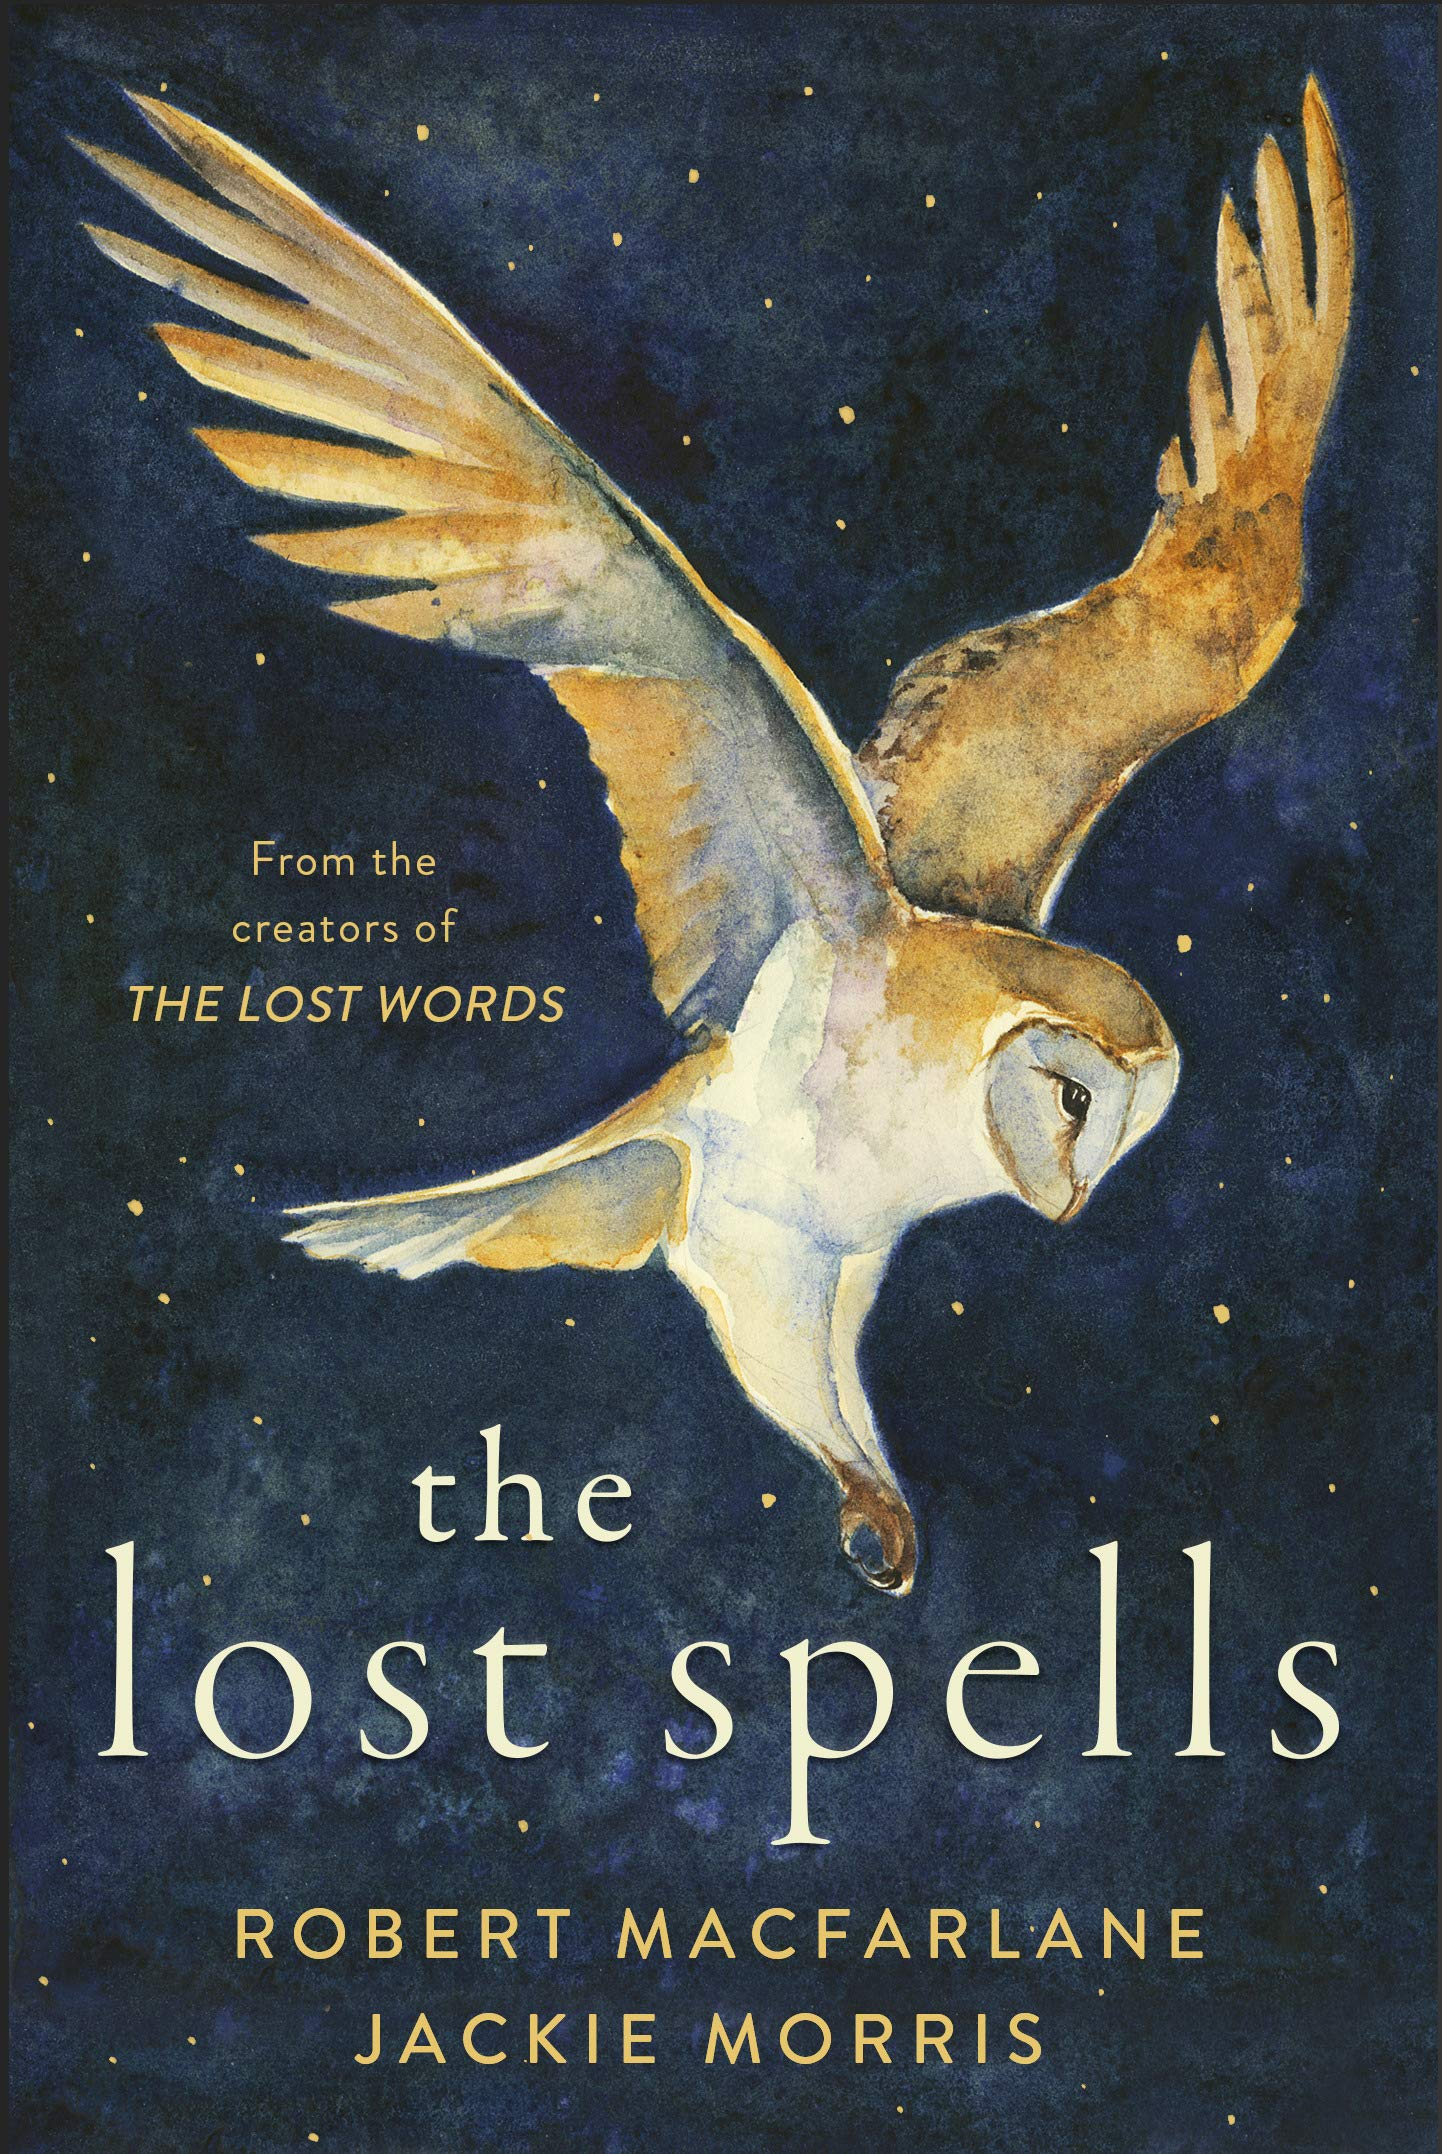 The Lost Spells | Robert McFarlane | Charlie Byrne's